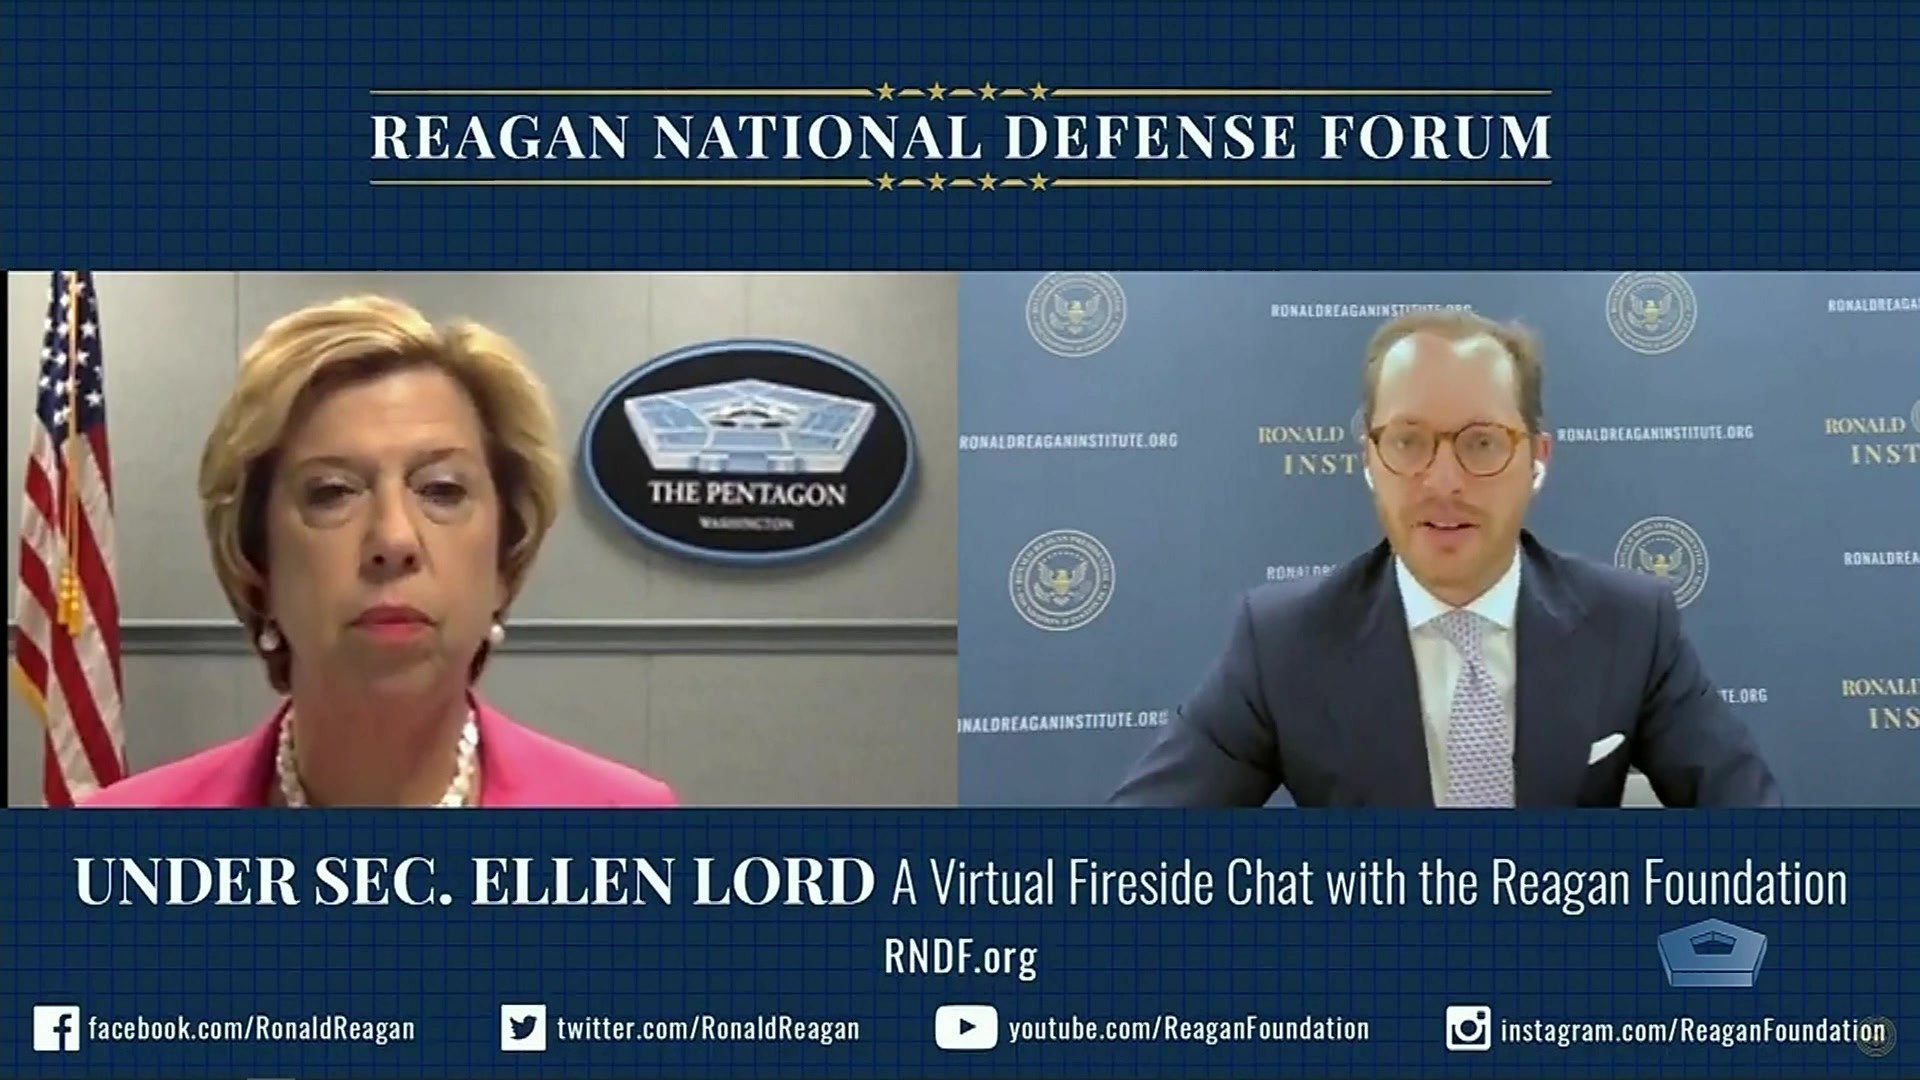 Ellen M. Lord, undersecretary of defense for acquisition and sustainment, joins Roger Zakheim, director of the Ronald Reagan Institute, for a virtual fireside chat to discuss U.S. defense policy in the era of COVID-19, the national security innovation base and how a flat budget will affect the Pentagon, July 16, 2020. This event is an extension of programming from the Reagan National Defense Forum.